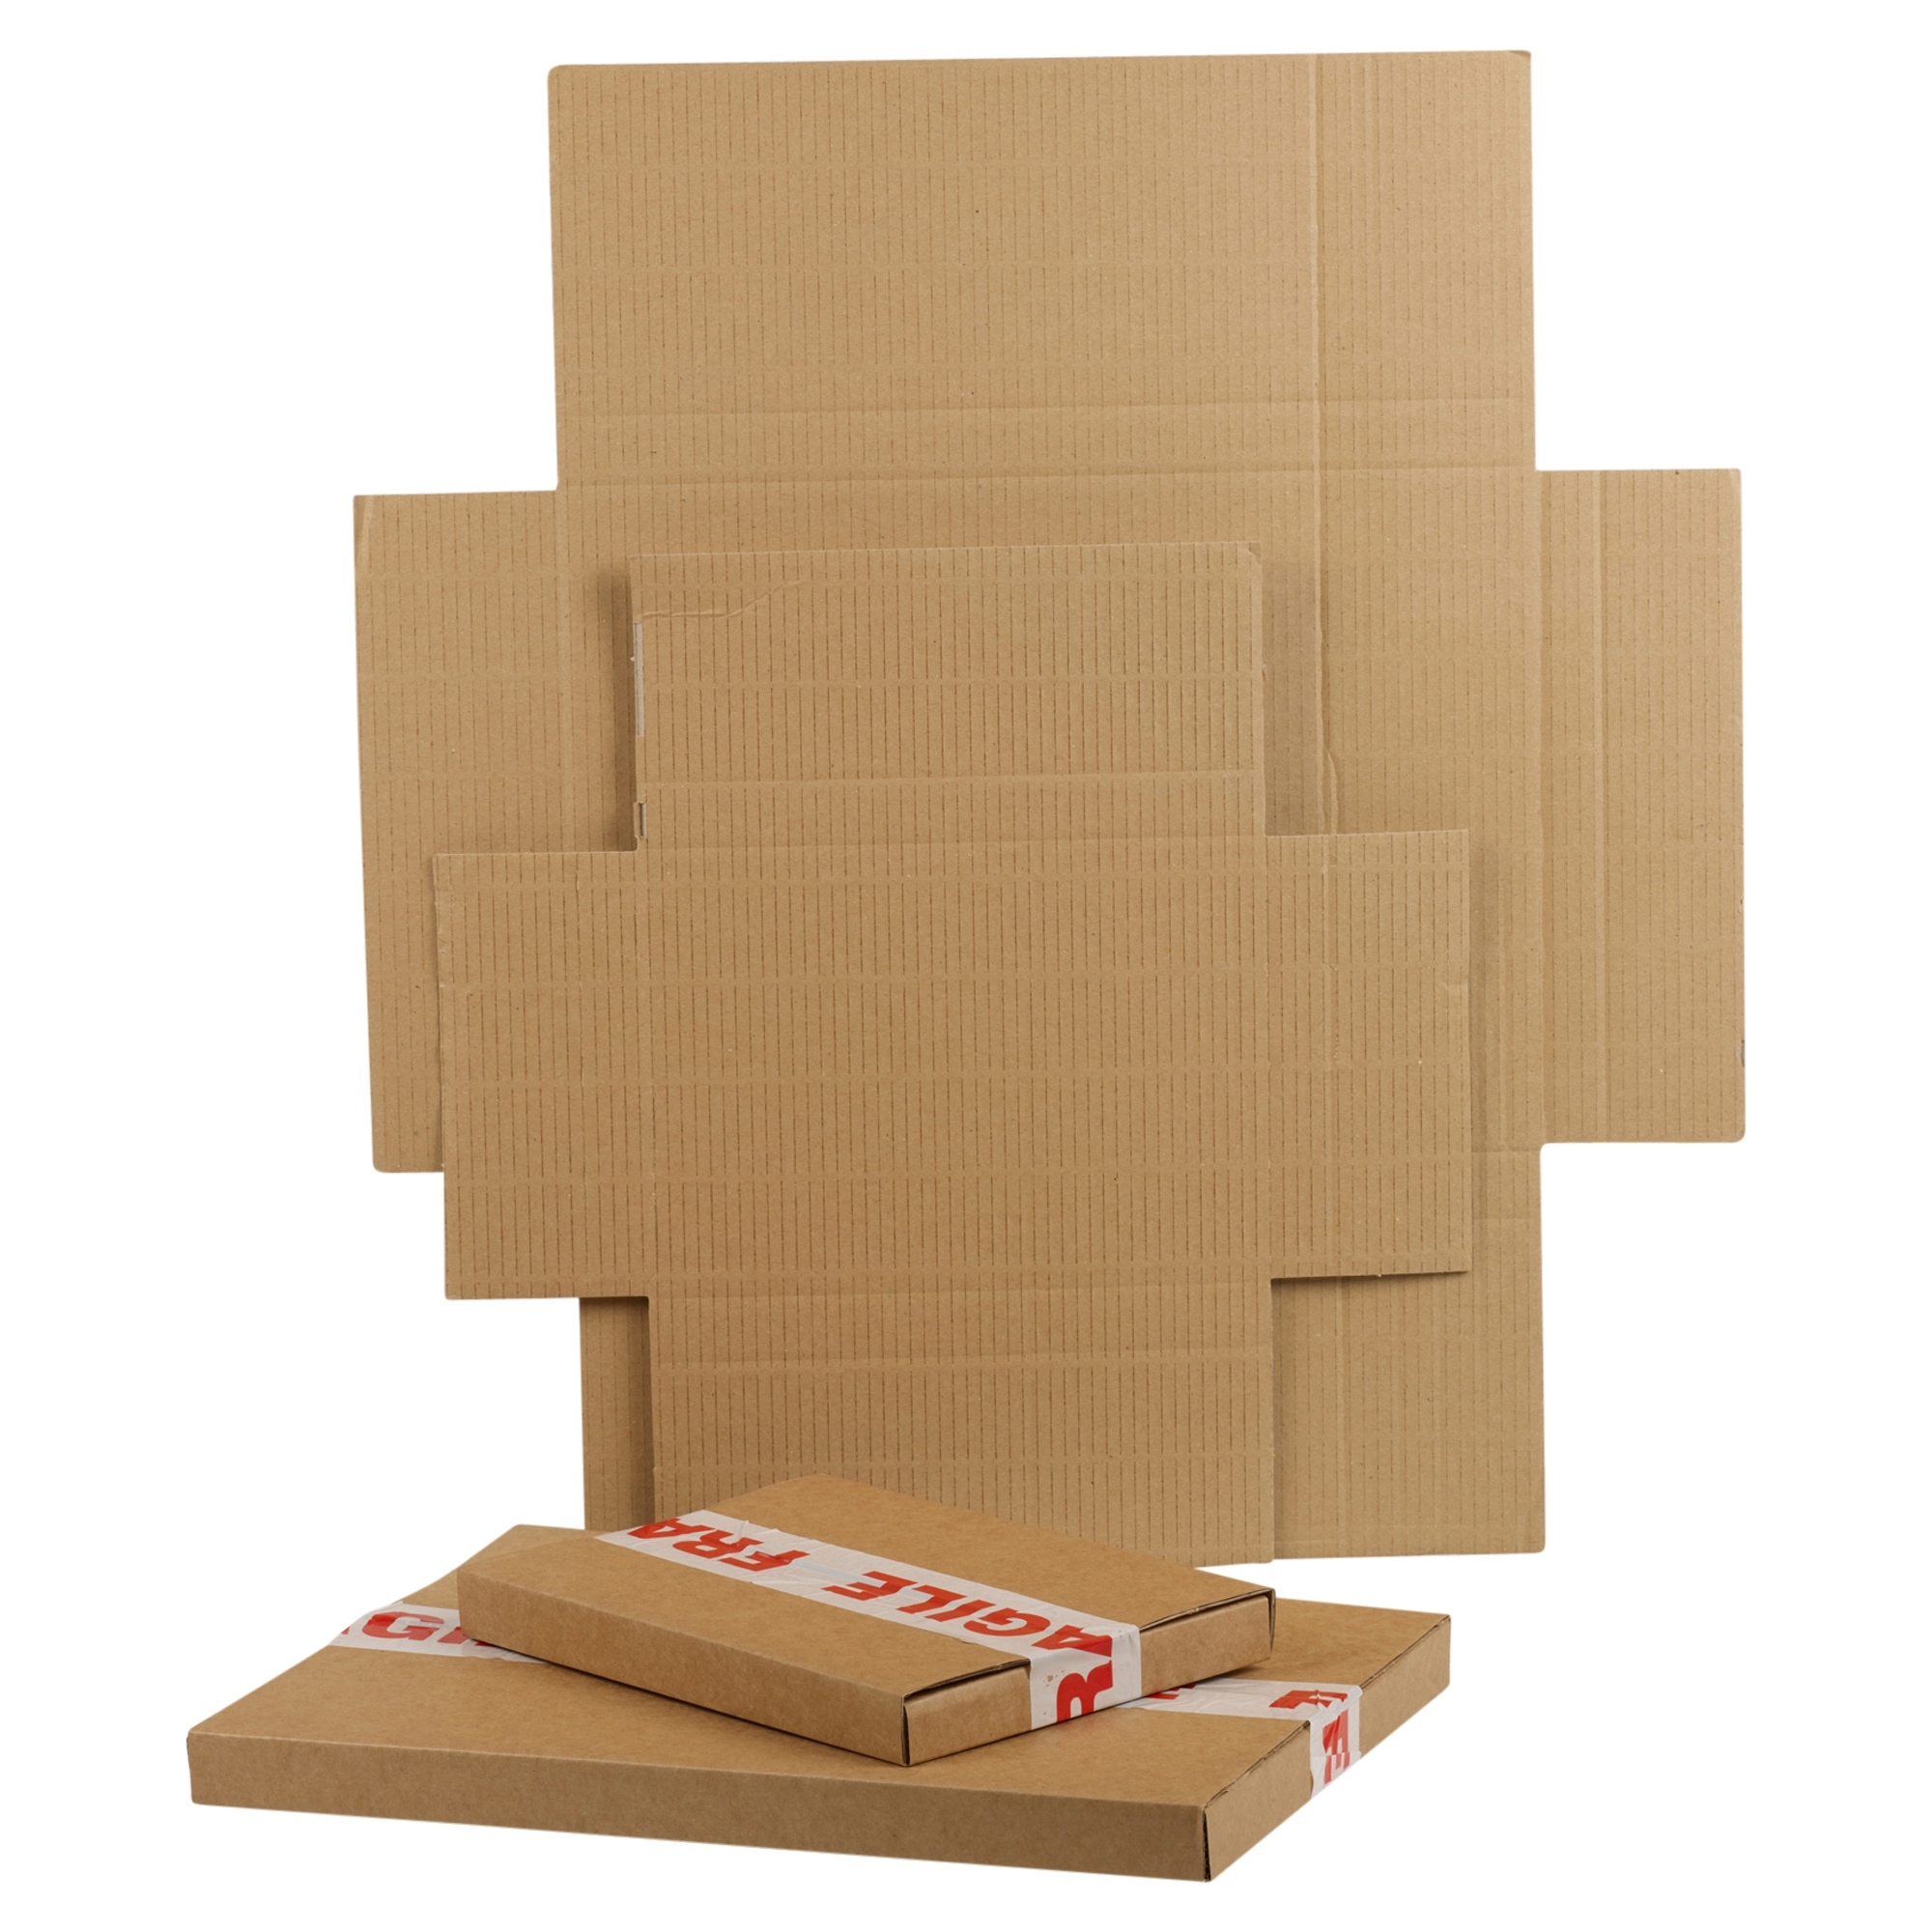 strong royal mail large letter box cardboard parcel With cardboard letter box